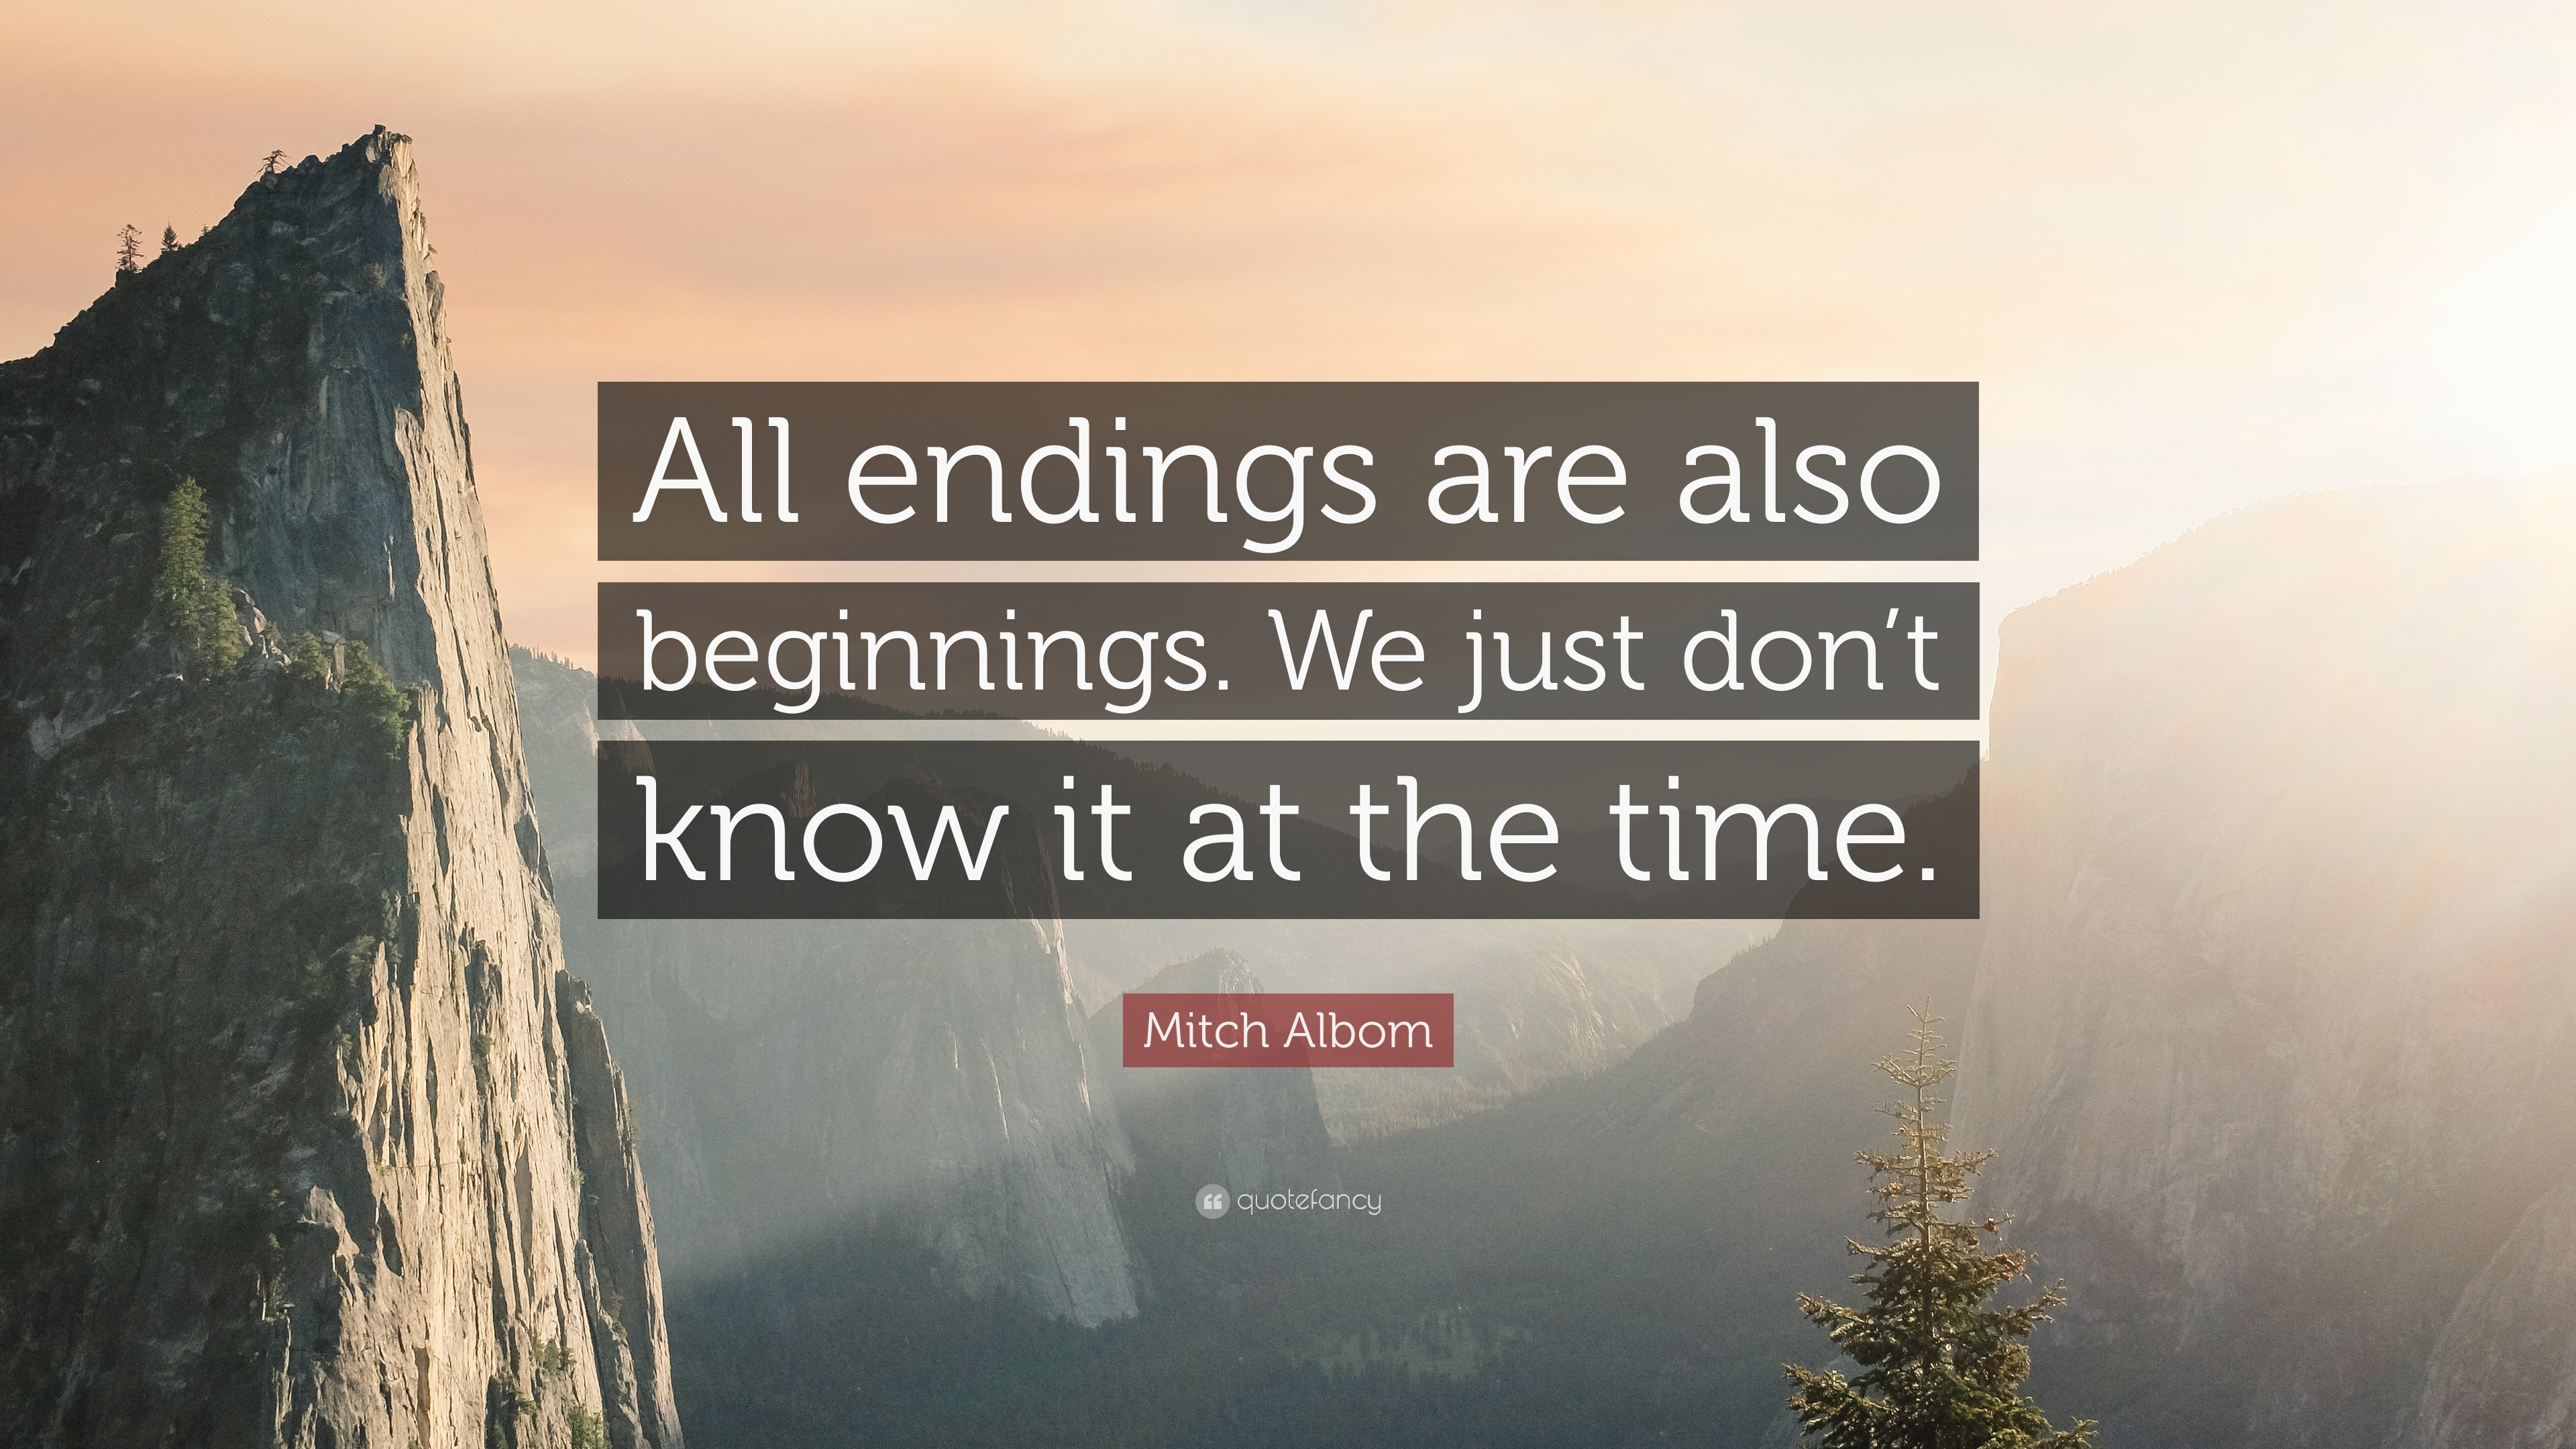 Mitch Albom Quote: U201cAll Endings Are Also Beginnings. We Just Donu0027t